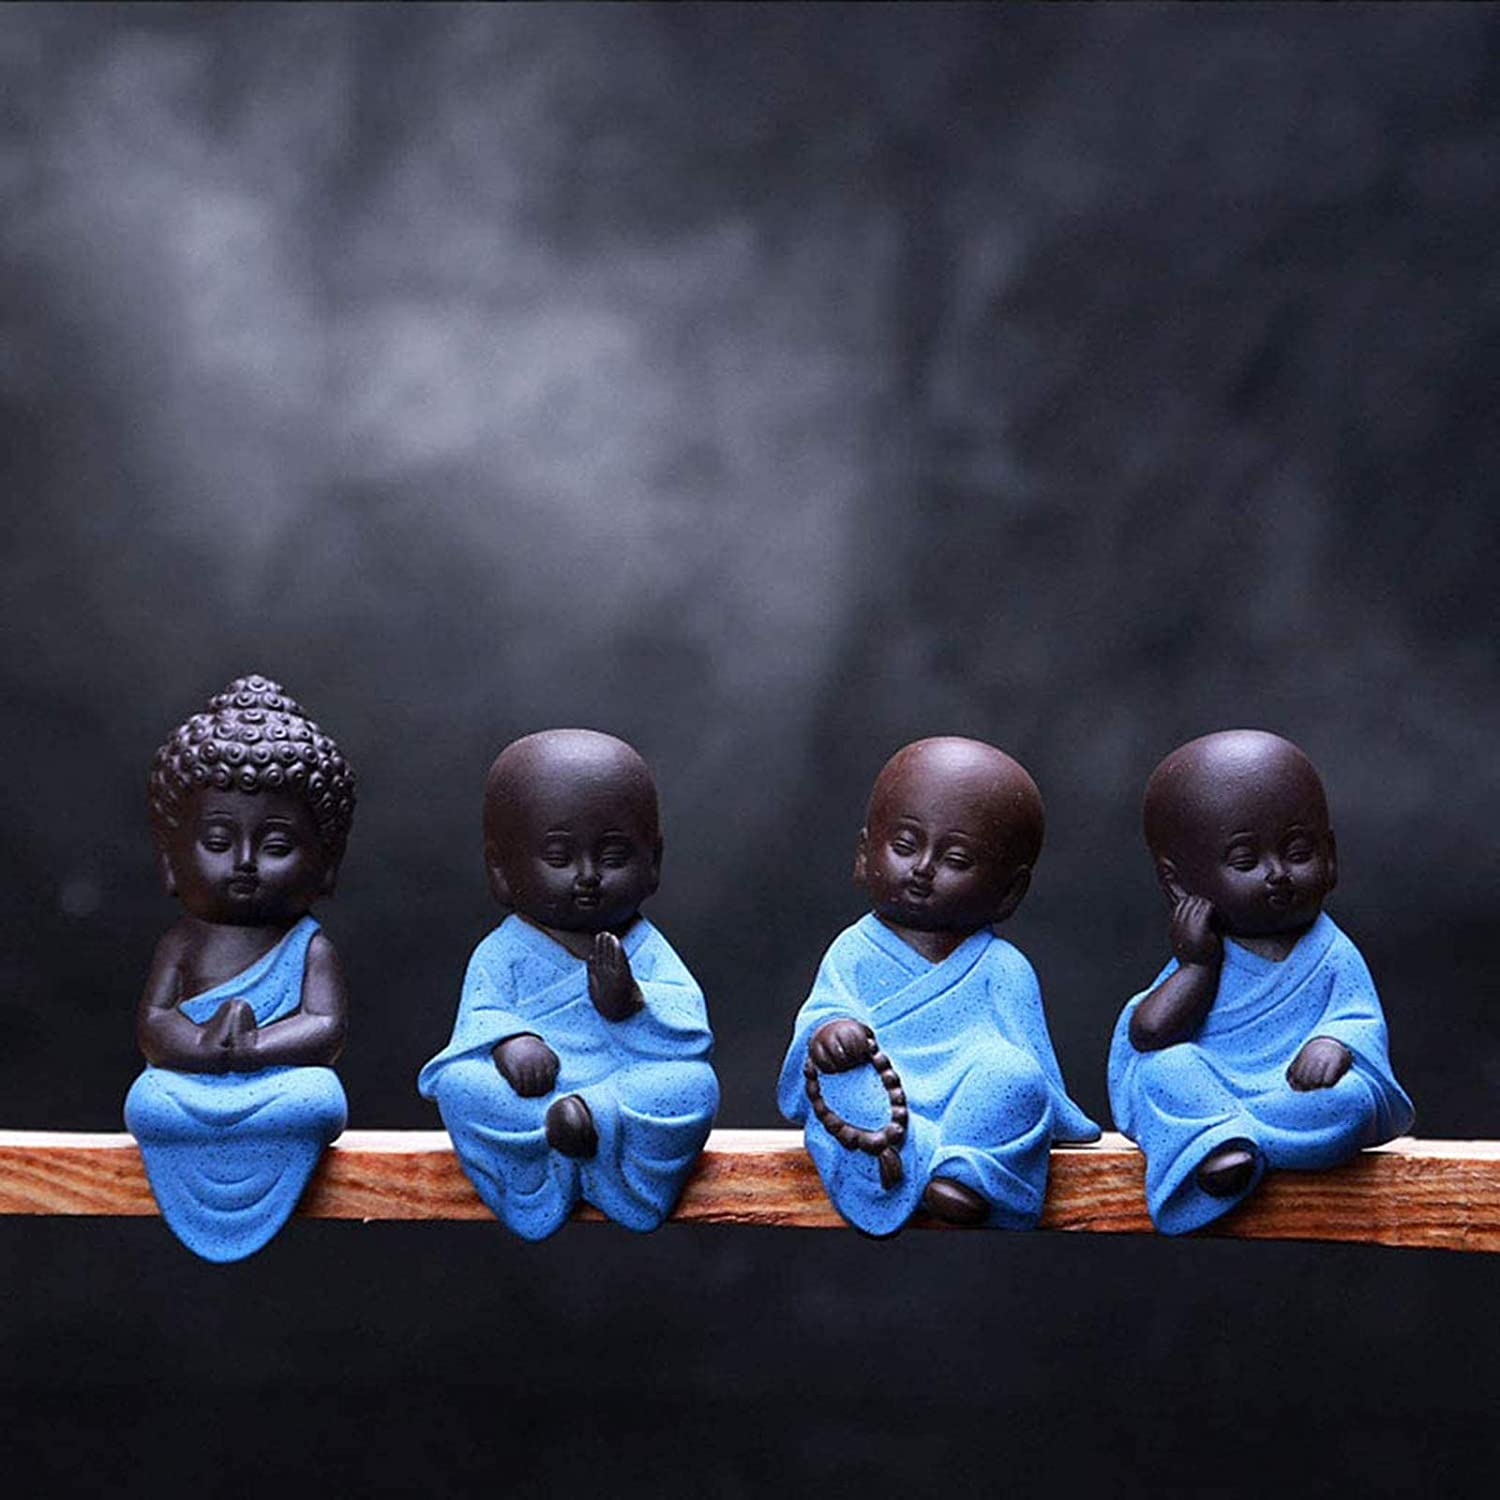 YUNDING Set of 4 Mini Sitting Lucky Buddha Ornaments,Home Decor Garden Ornaments,Indoor Or Outdoor Feng Shui Meditation Yoga Figurines,Little Monk Decor Tea Set Accessories(Color:A)